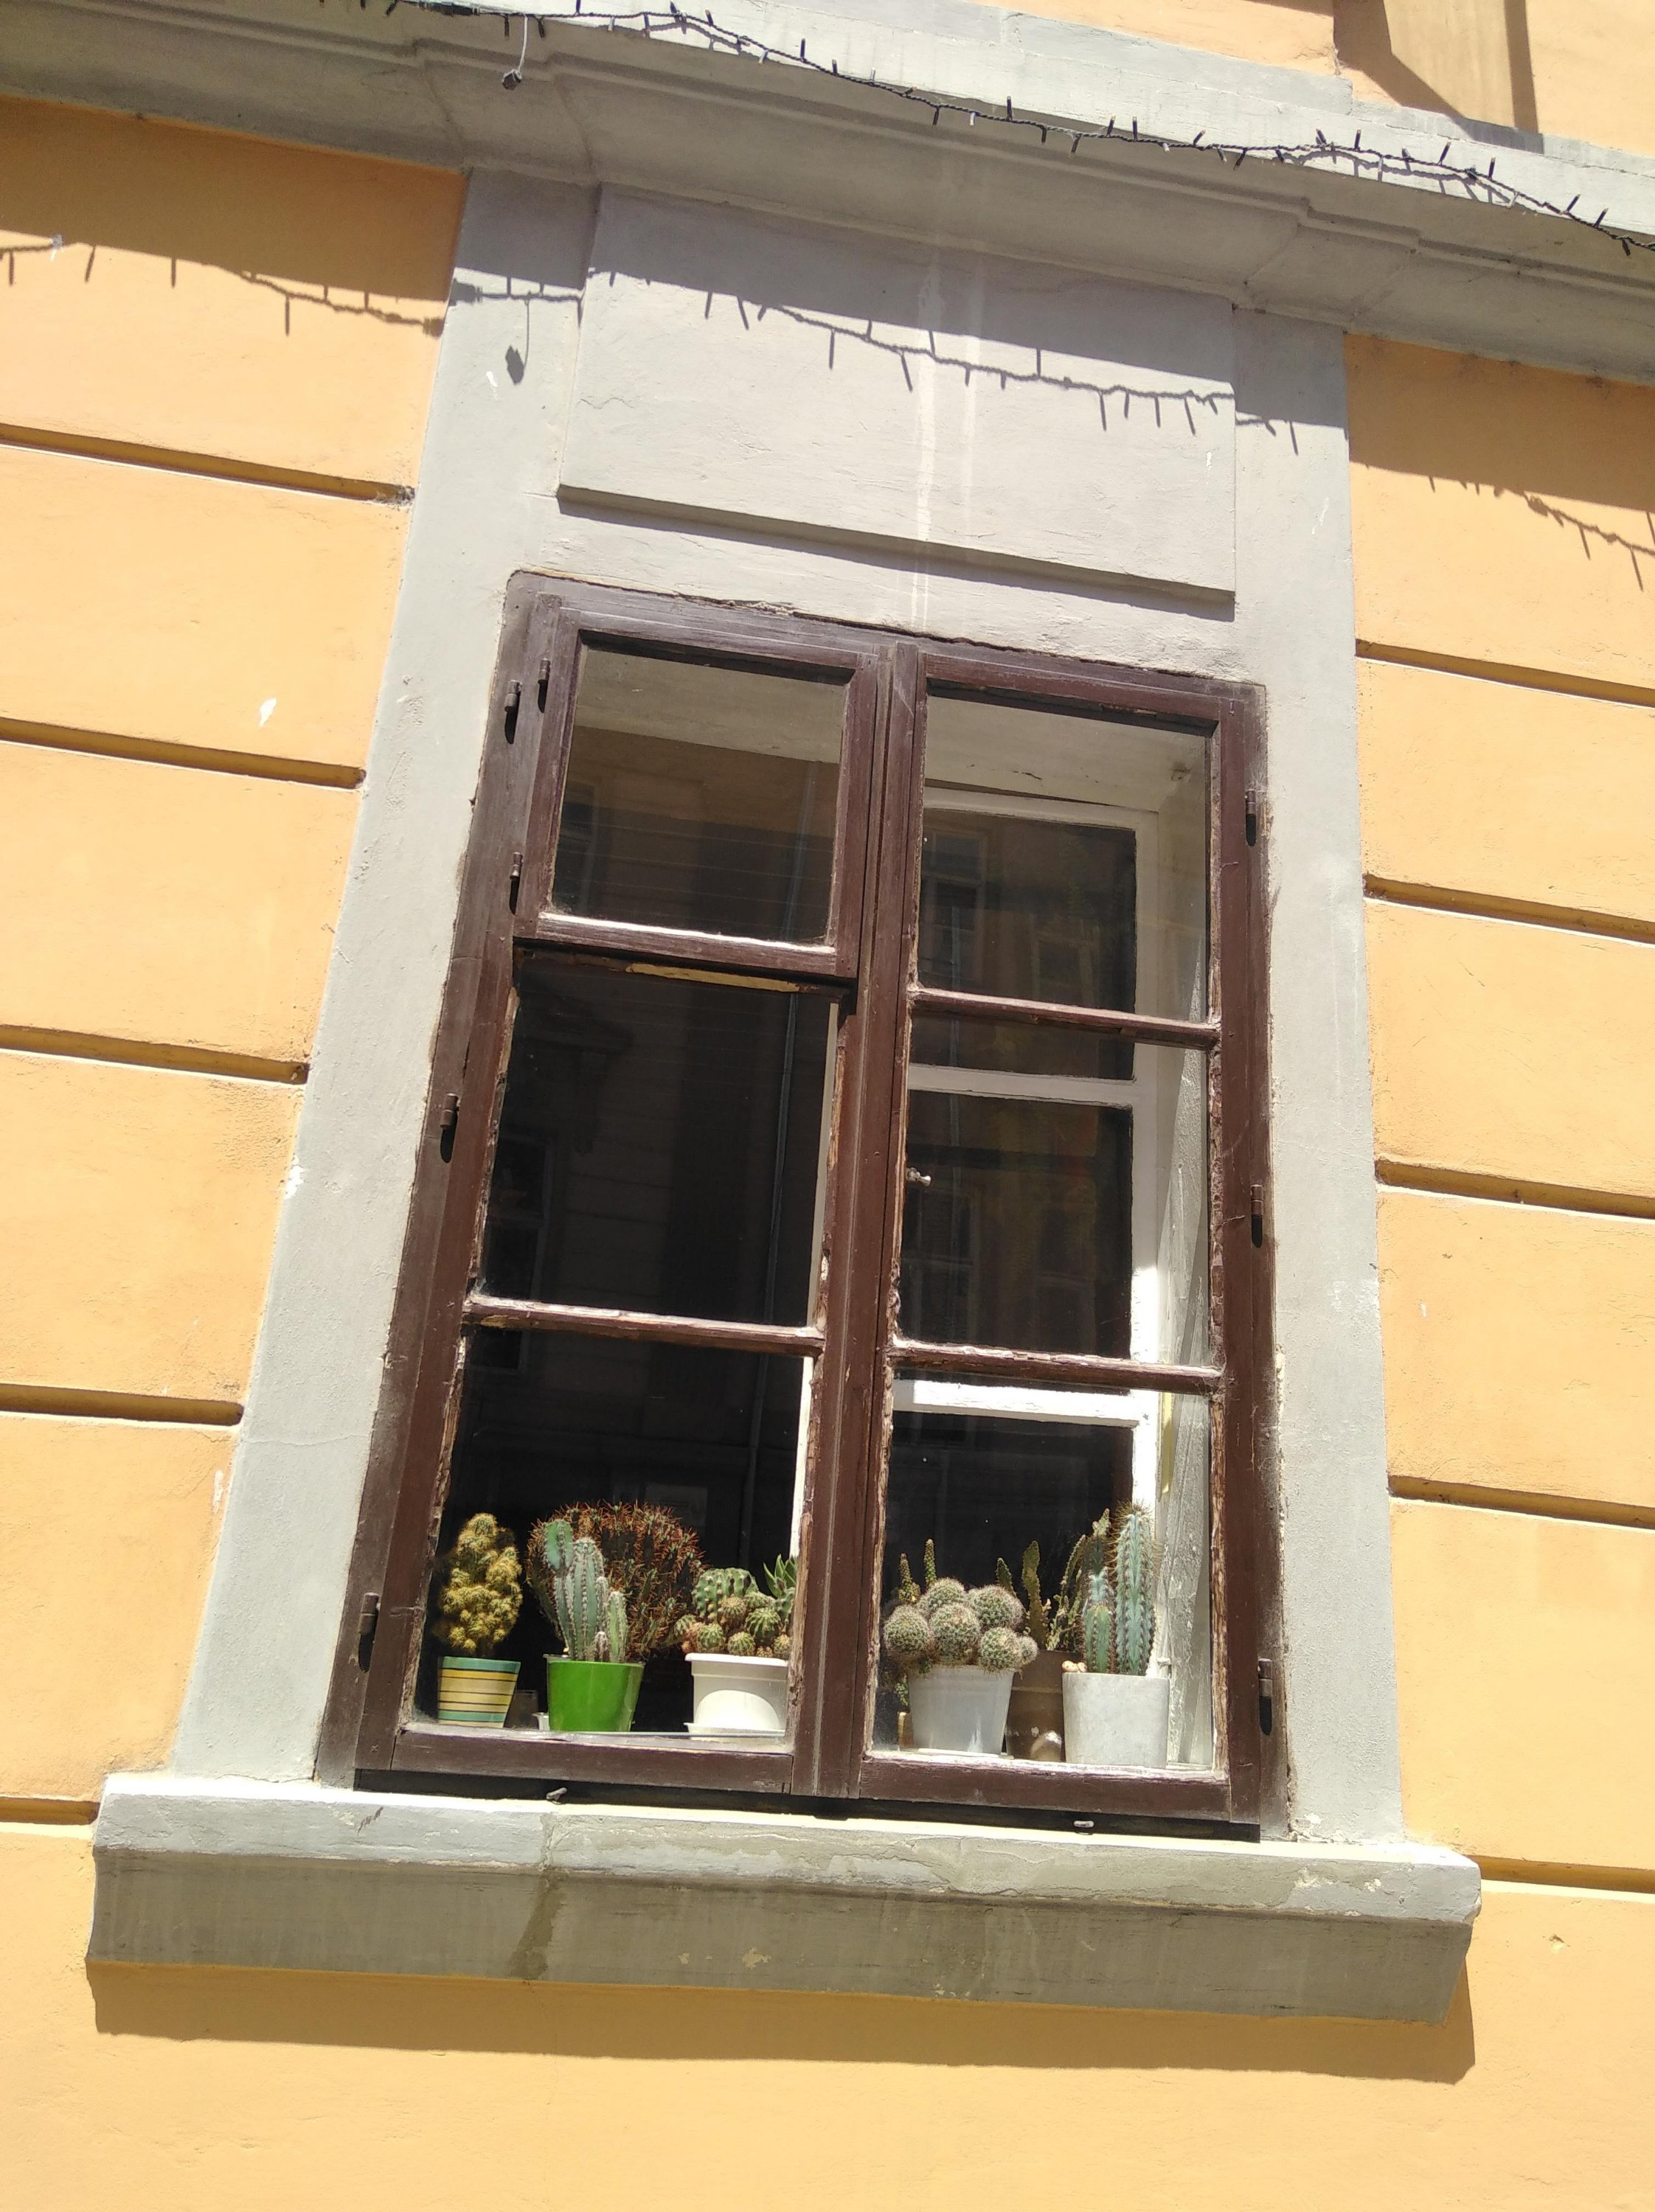 Collection of home grown cacti in the window of an old house window cactus garden photography in color by Slovenian artist Tamara Jare